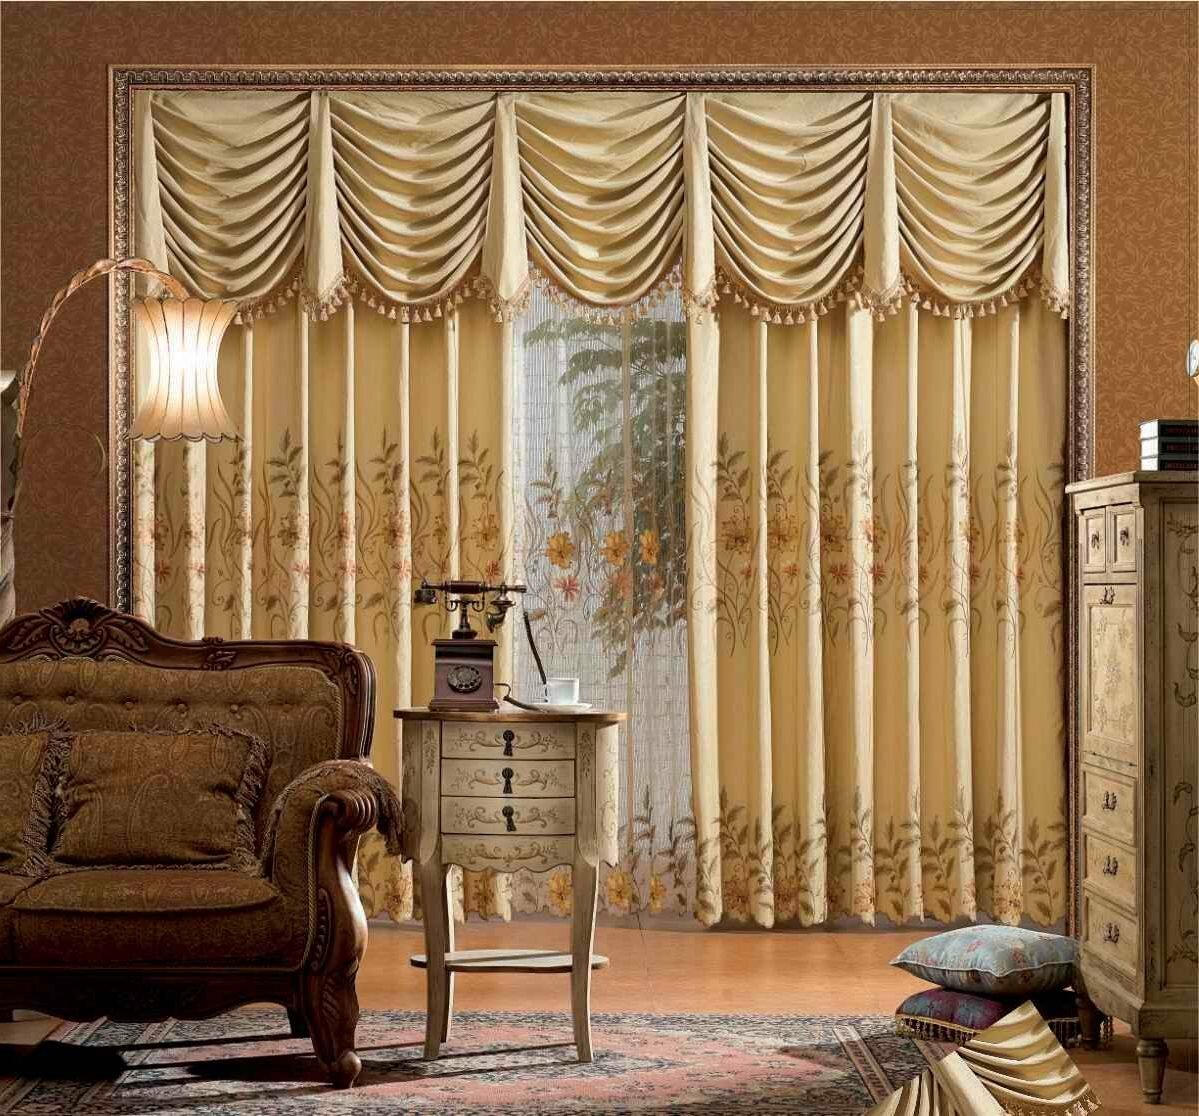 Window Treatments with Valances | Livingroom Valances | Living Room Valances